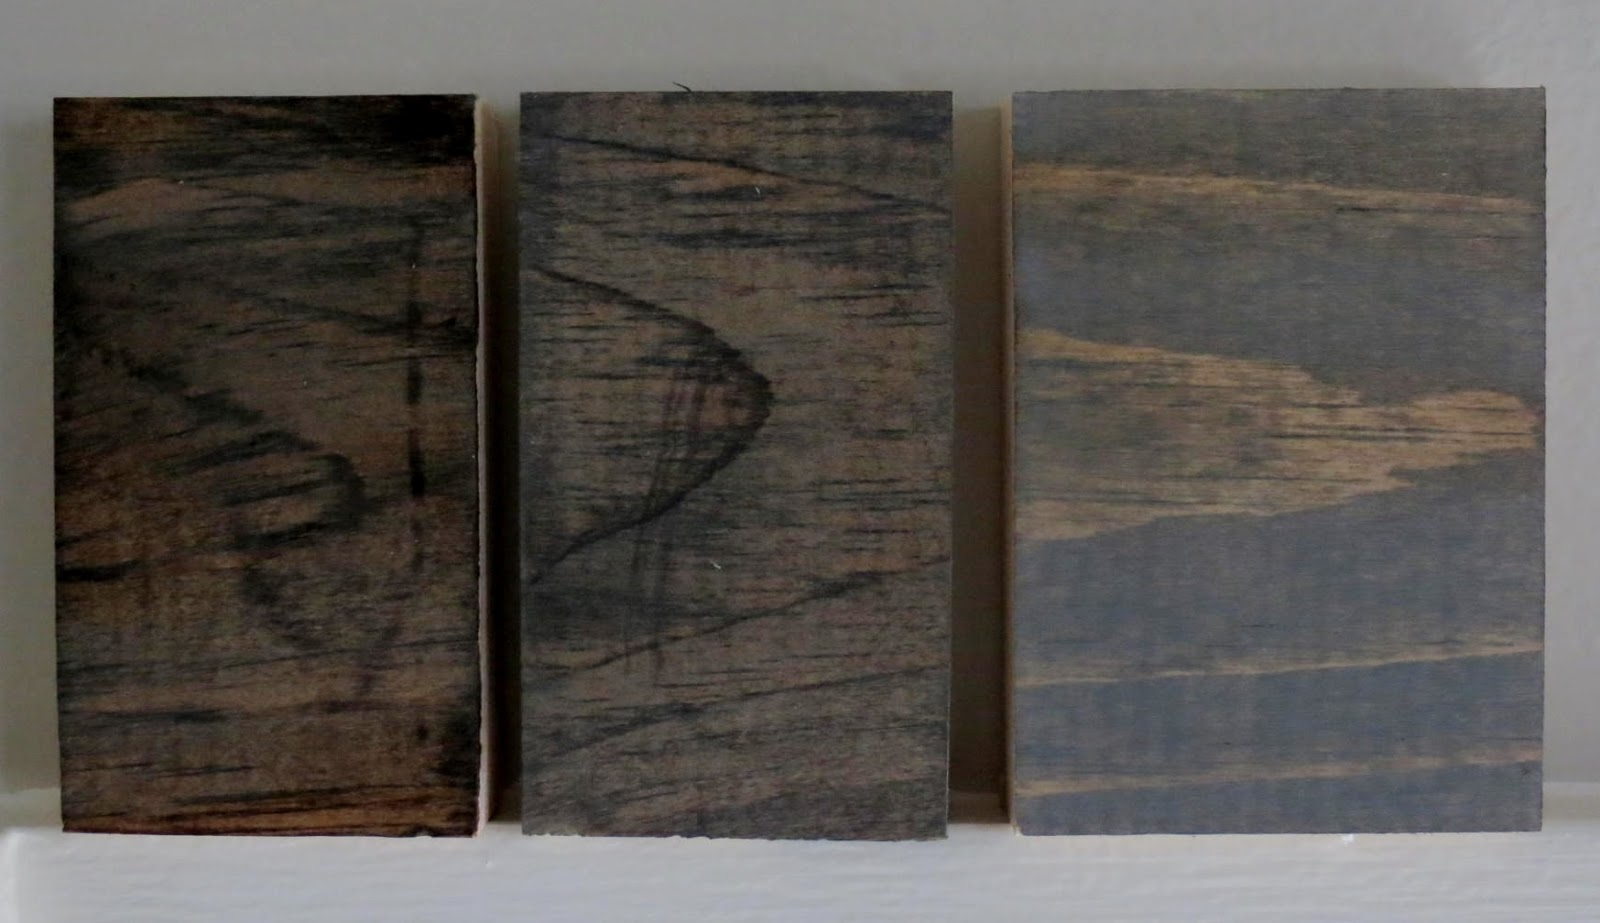 I Stained Each Board With Dark Walnut Stain Had Left Over From Another Project After That Dried Applied A Coat Of Weathered Gray